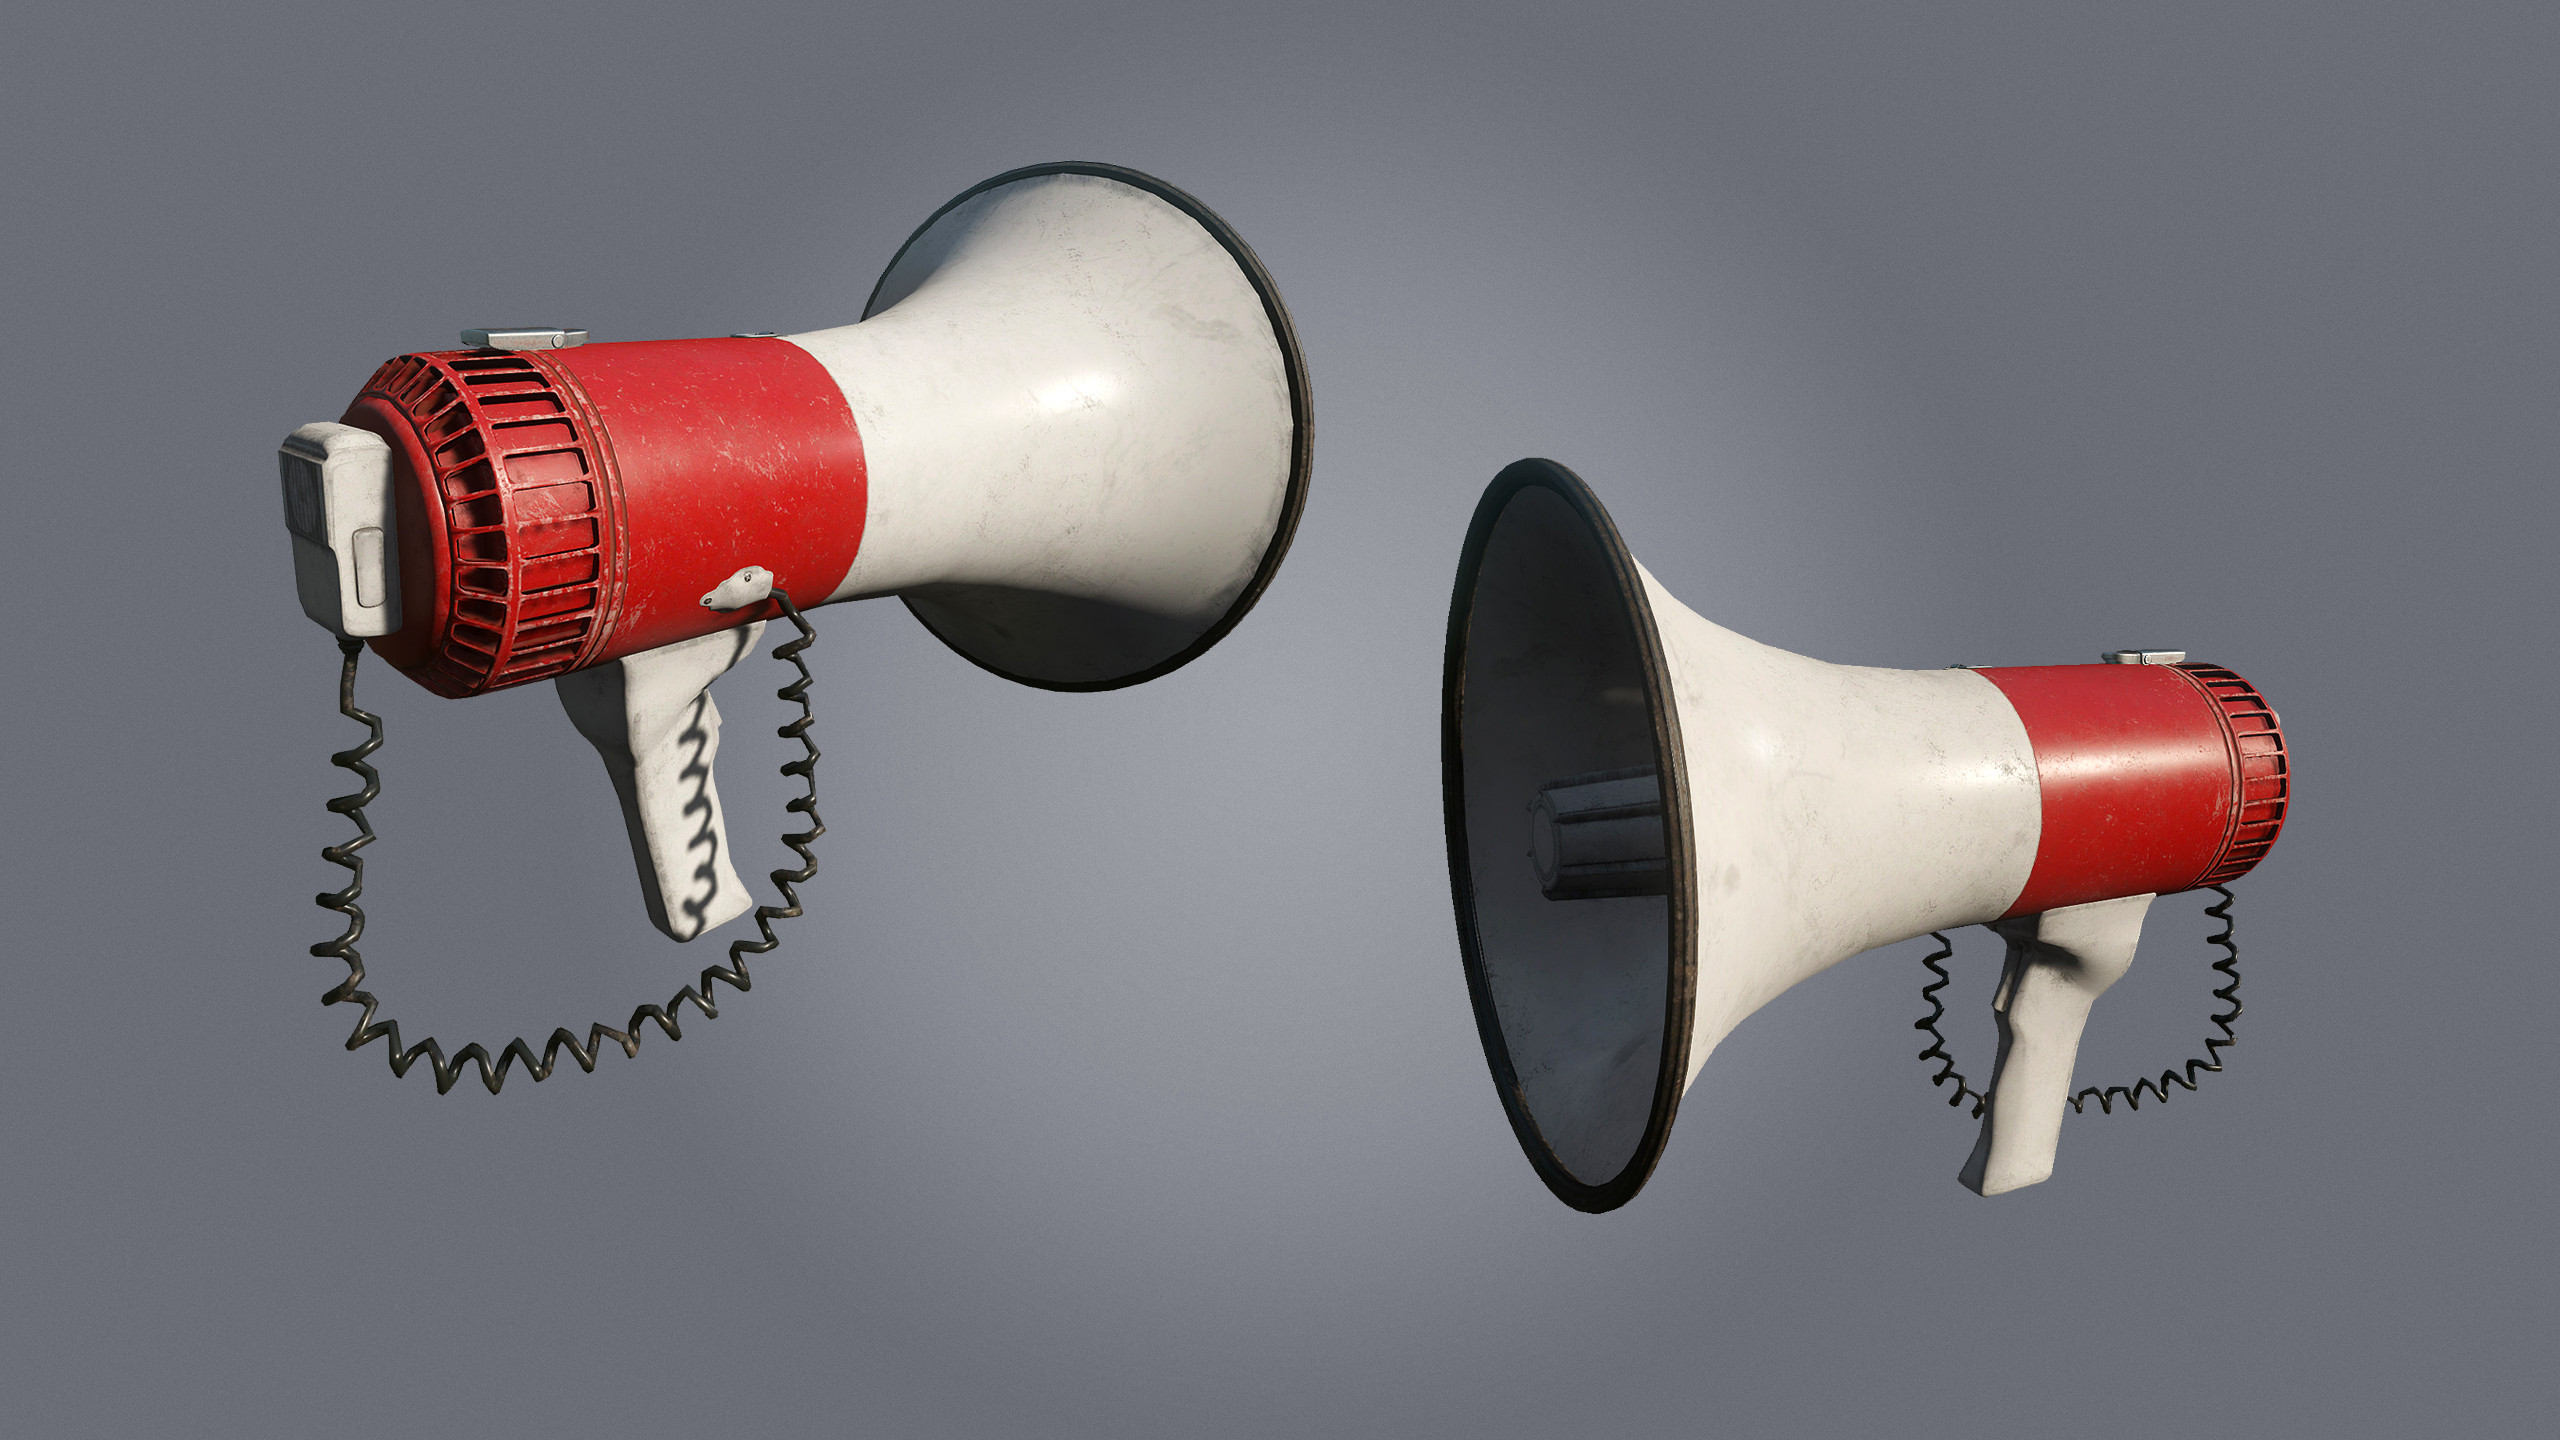 Megaphone increases range and loudness of VOIP